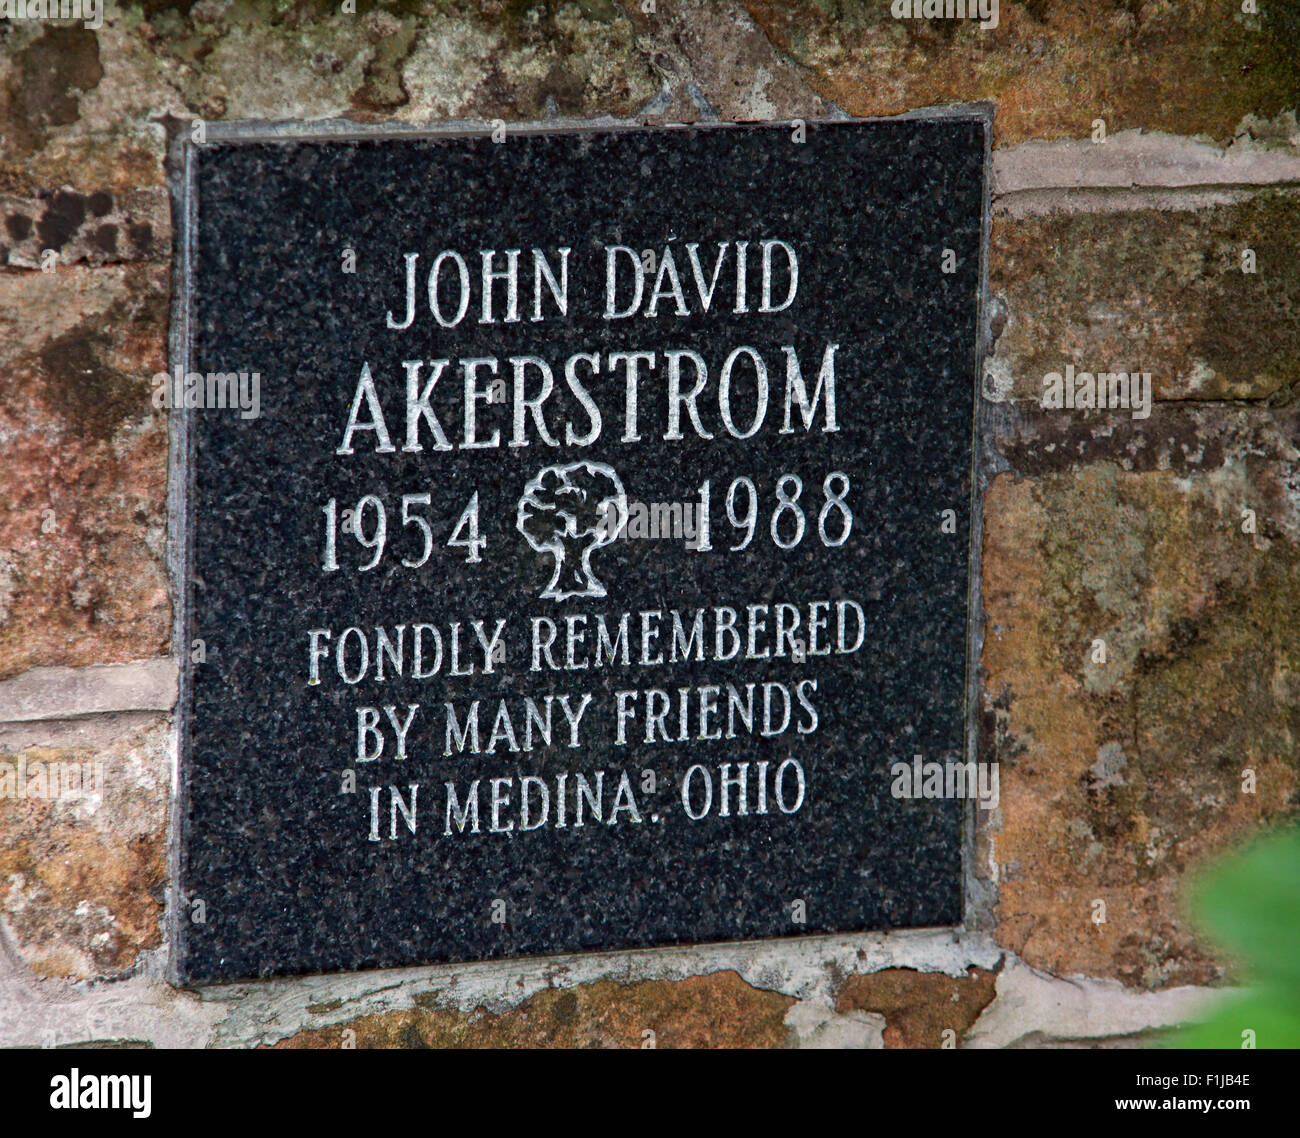 Lockerbie PanAm103 In Rememberance Memorial John David Akerstrom, Scotland - Stock Image